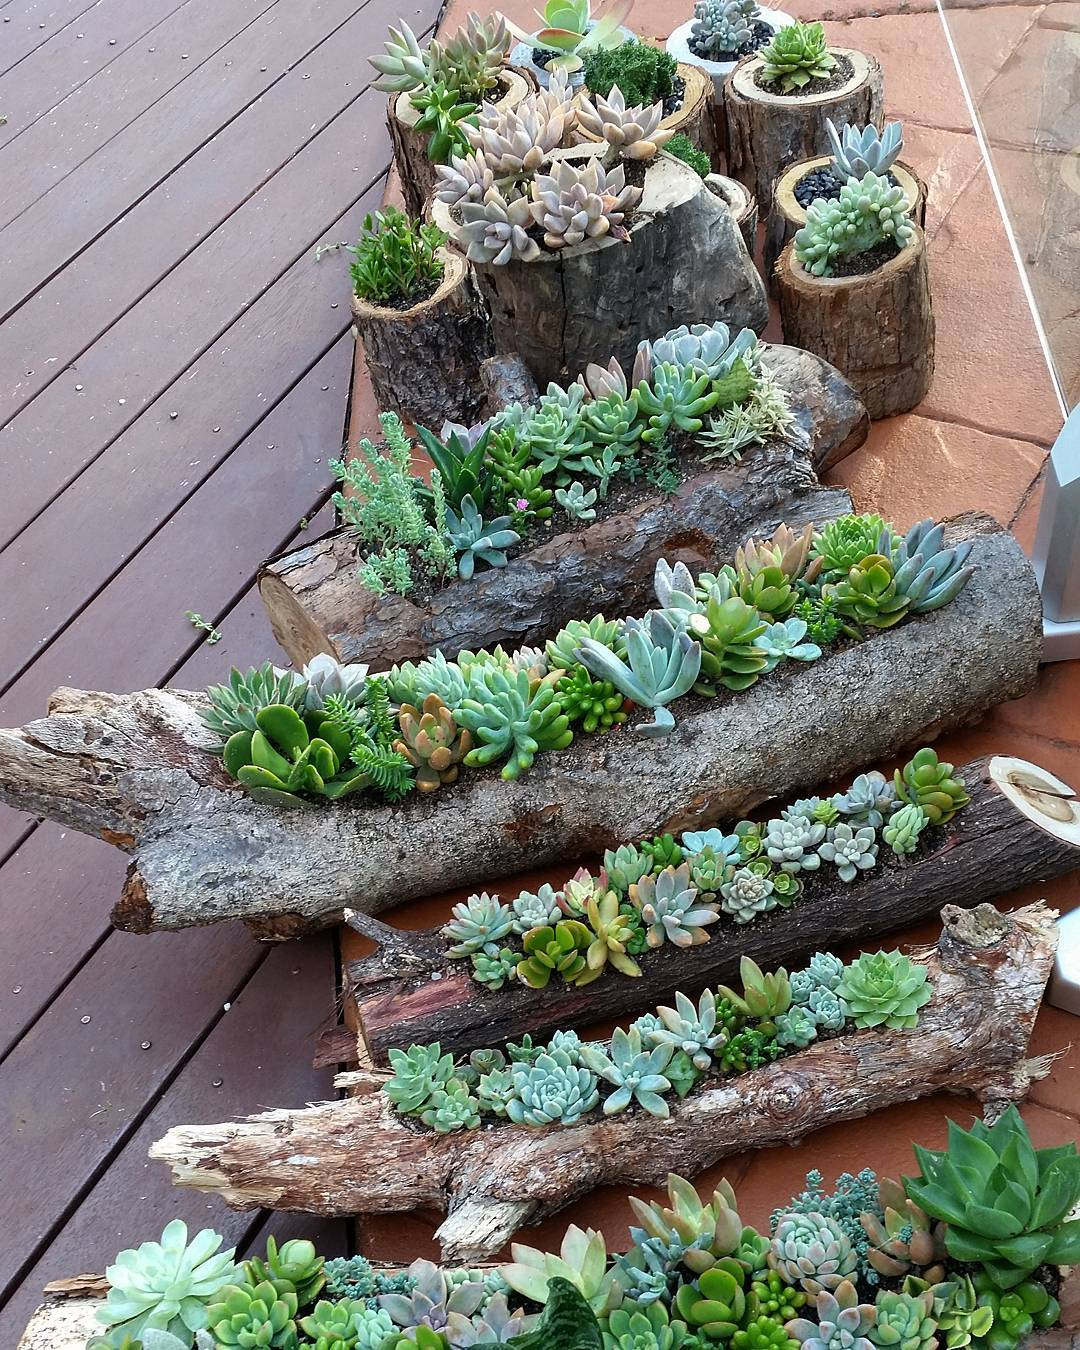 hollowed out logs and timber rounds are inexpesive containers for beautiful succulent gardens you can DIY